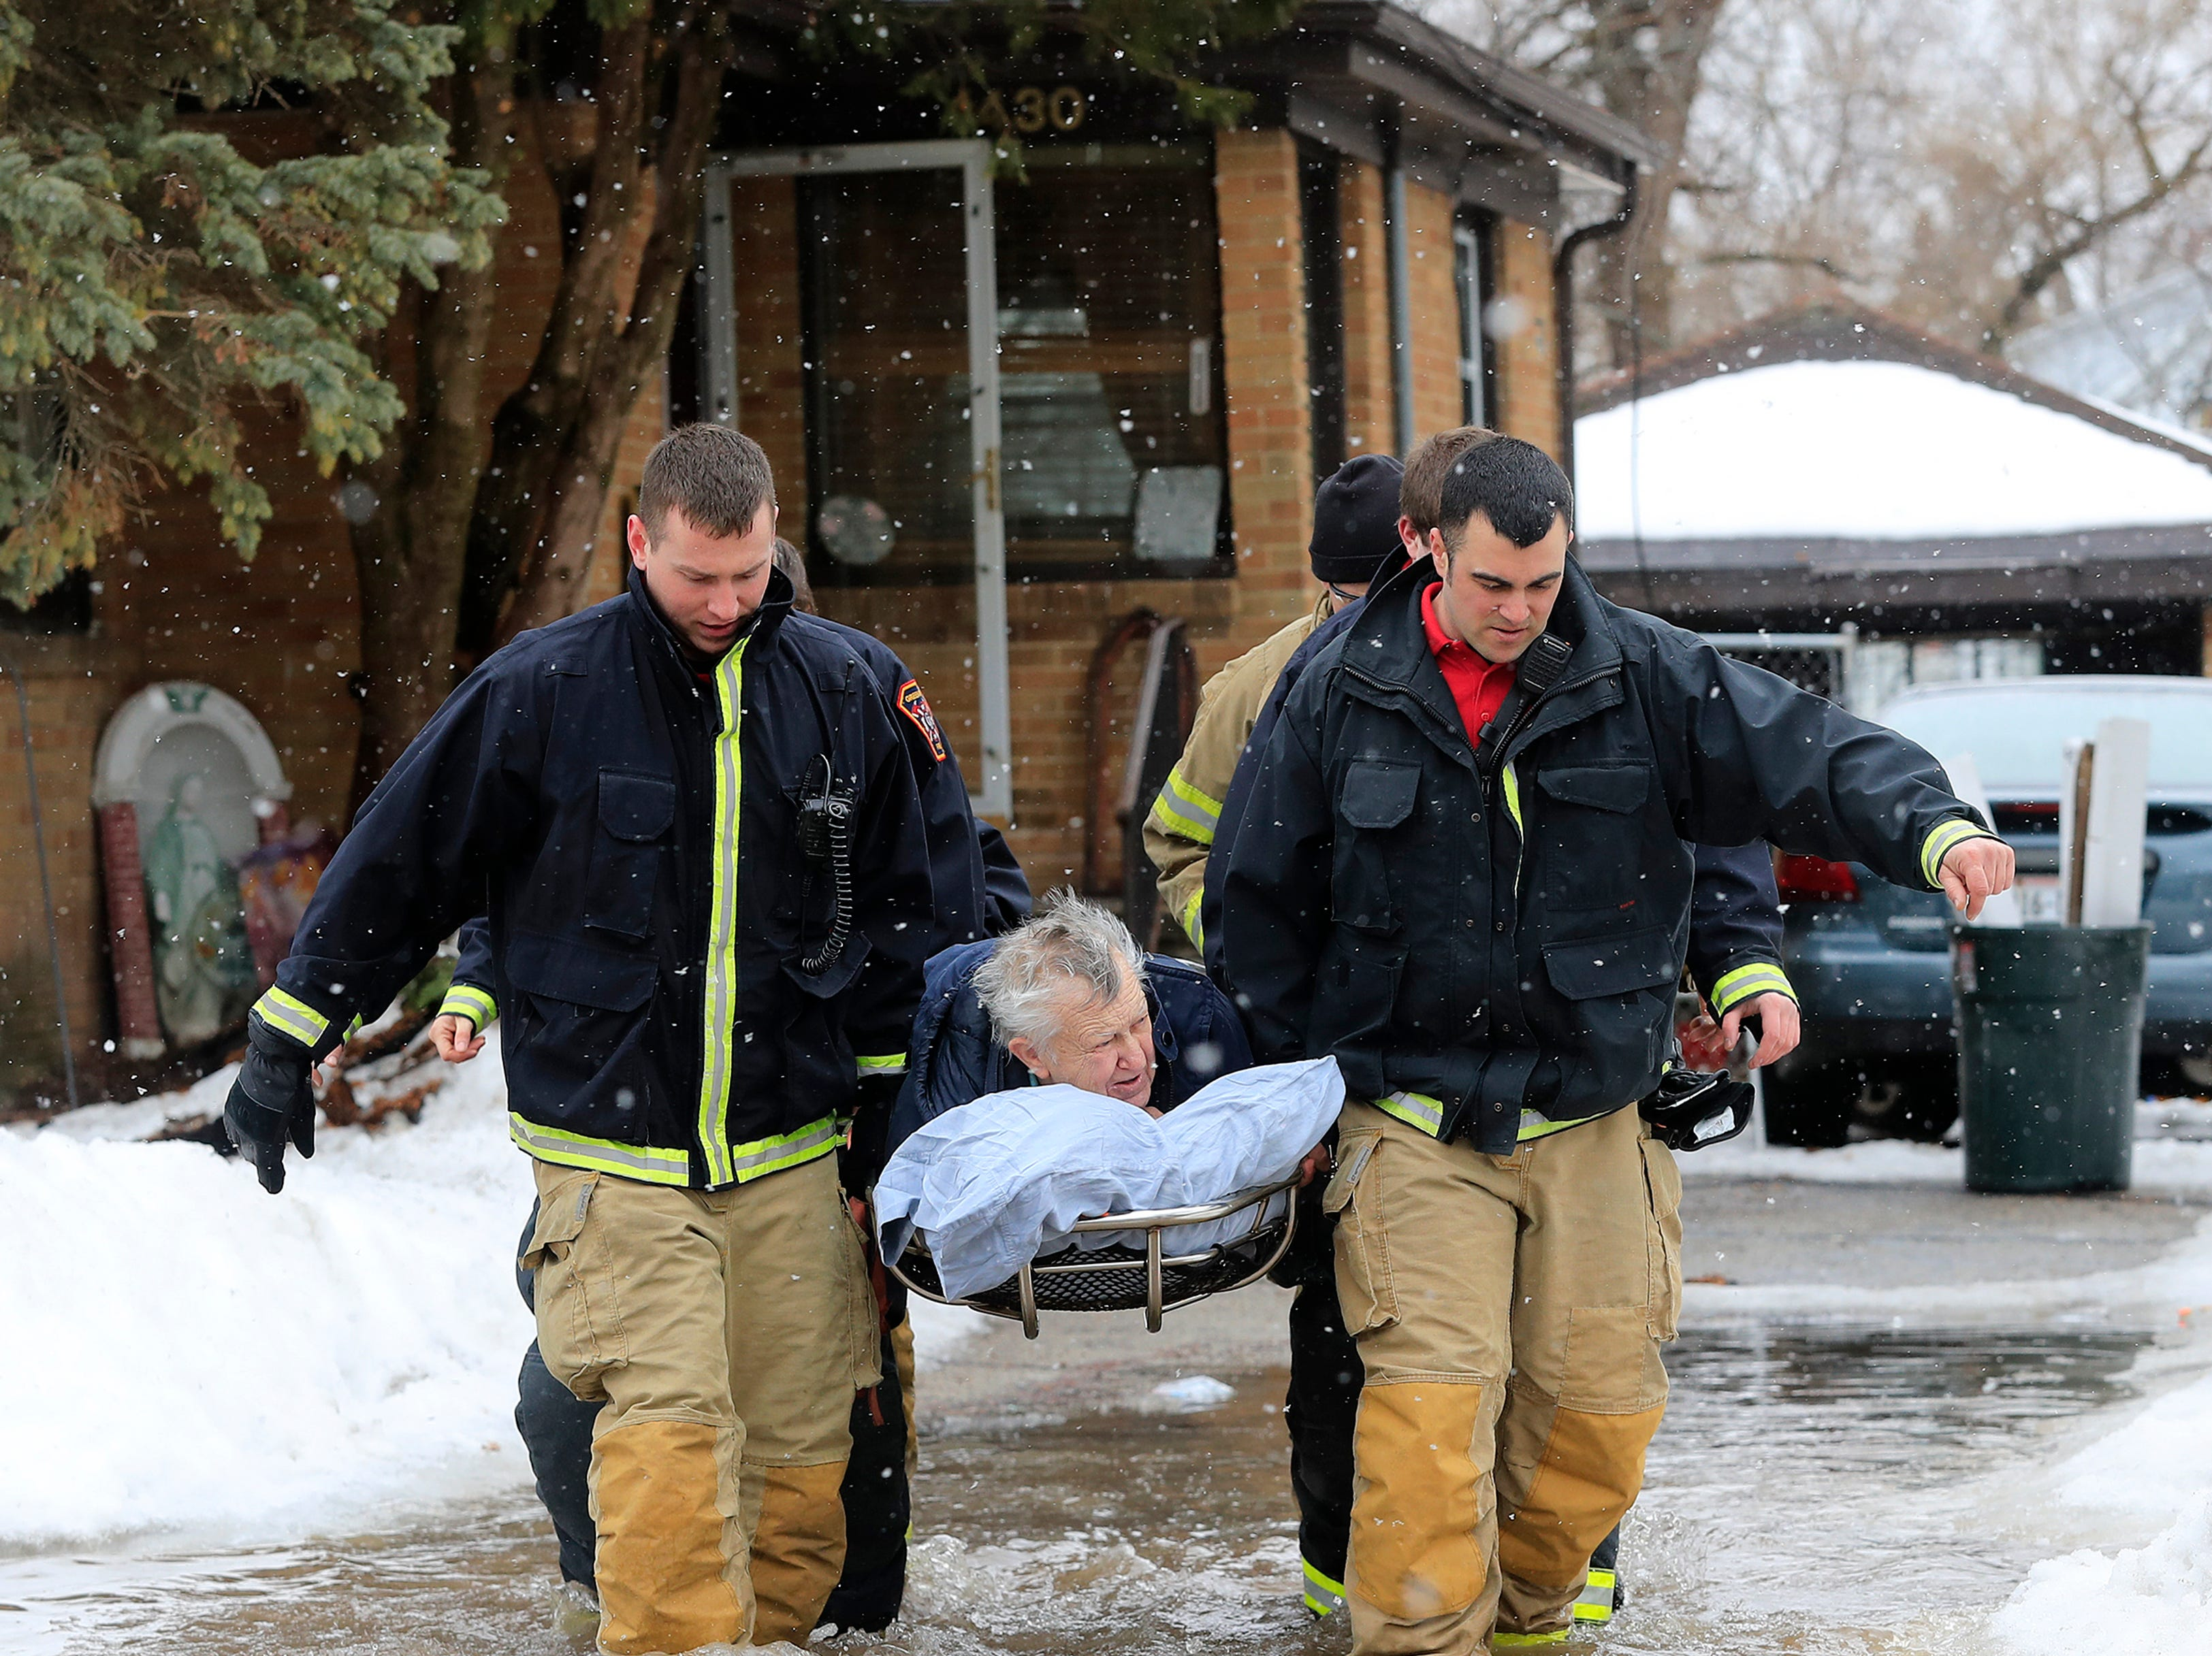 Green Bay firefighters assist residents on Crooks Street in evacuating their homes due to East river floodwaters on Friday, March 15, 2019 in Green Bay, Wis.